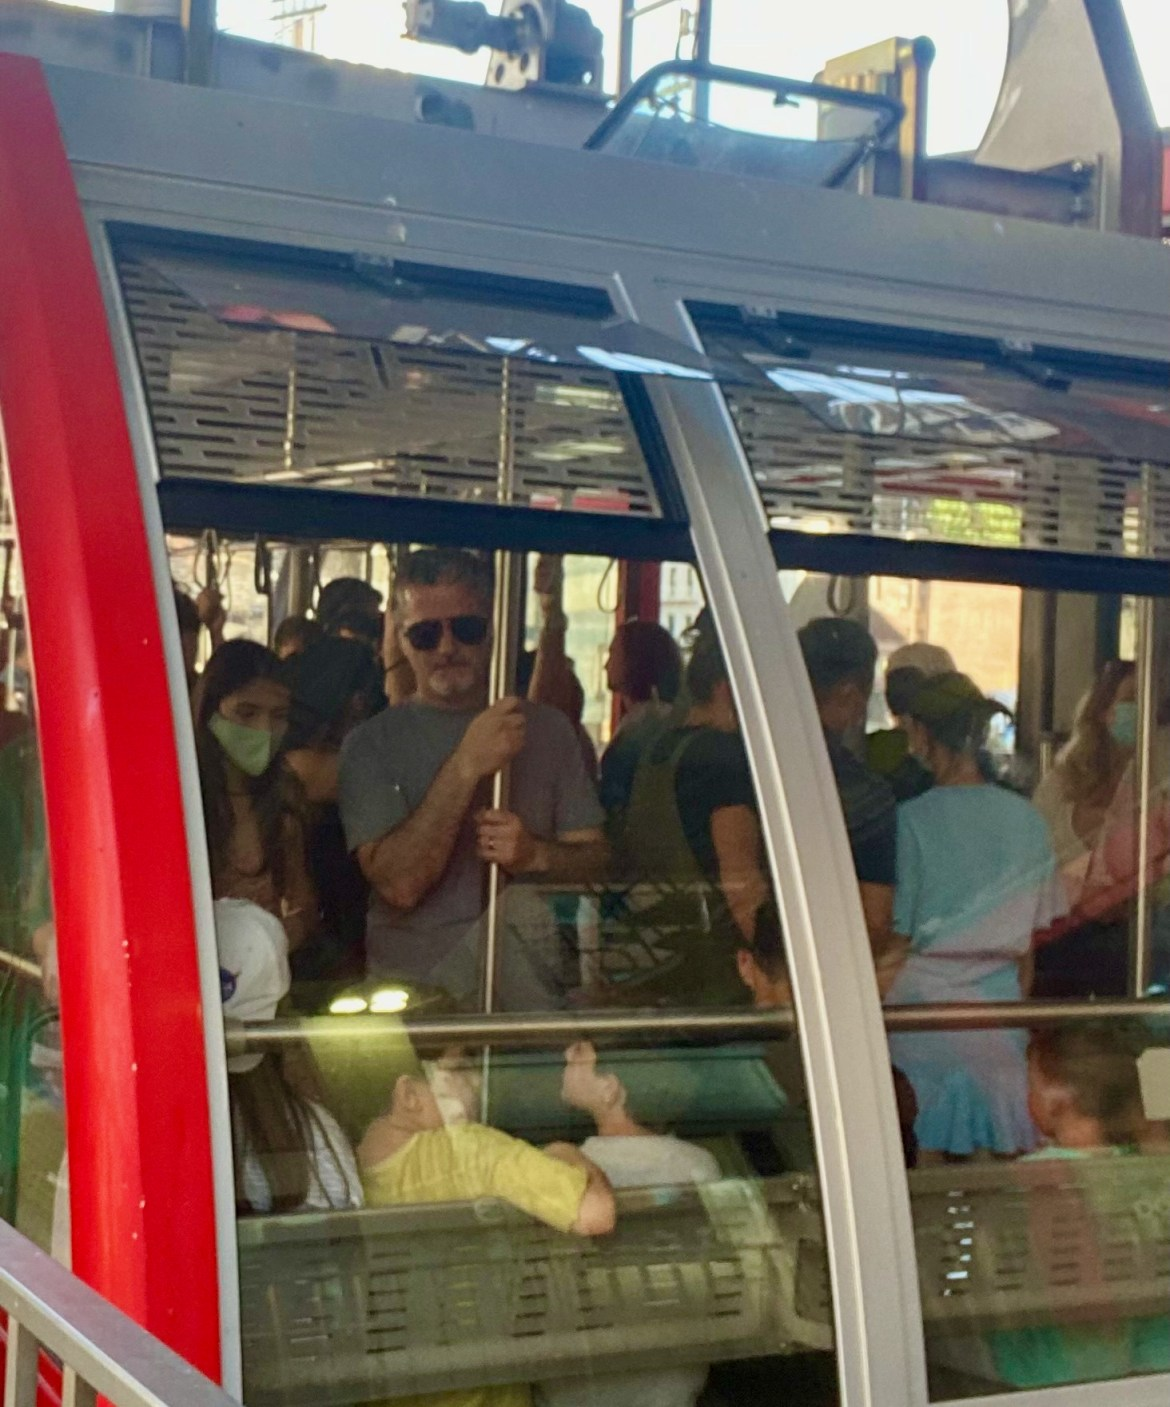 RIOC now gambles with safety, ignoring maskless riders squeezing on the Tram